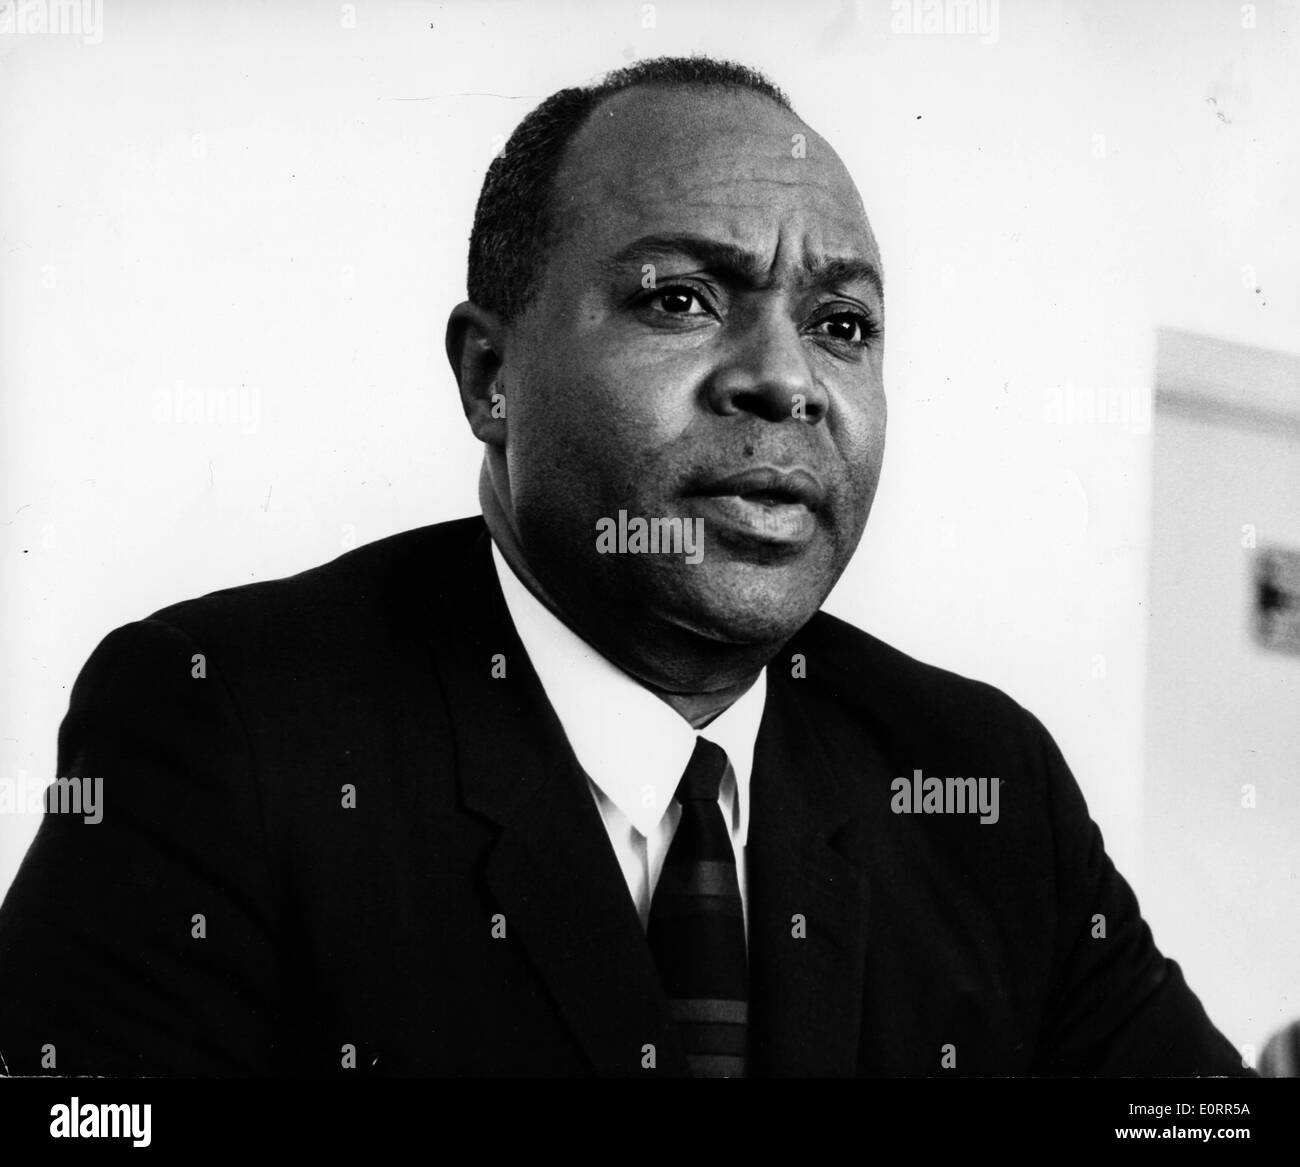 Civil Rights leader James L. Farmer, Jr. in meeting - Stock Image